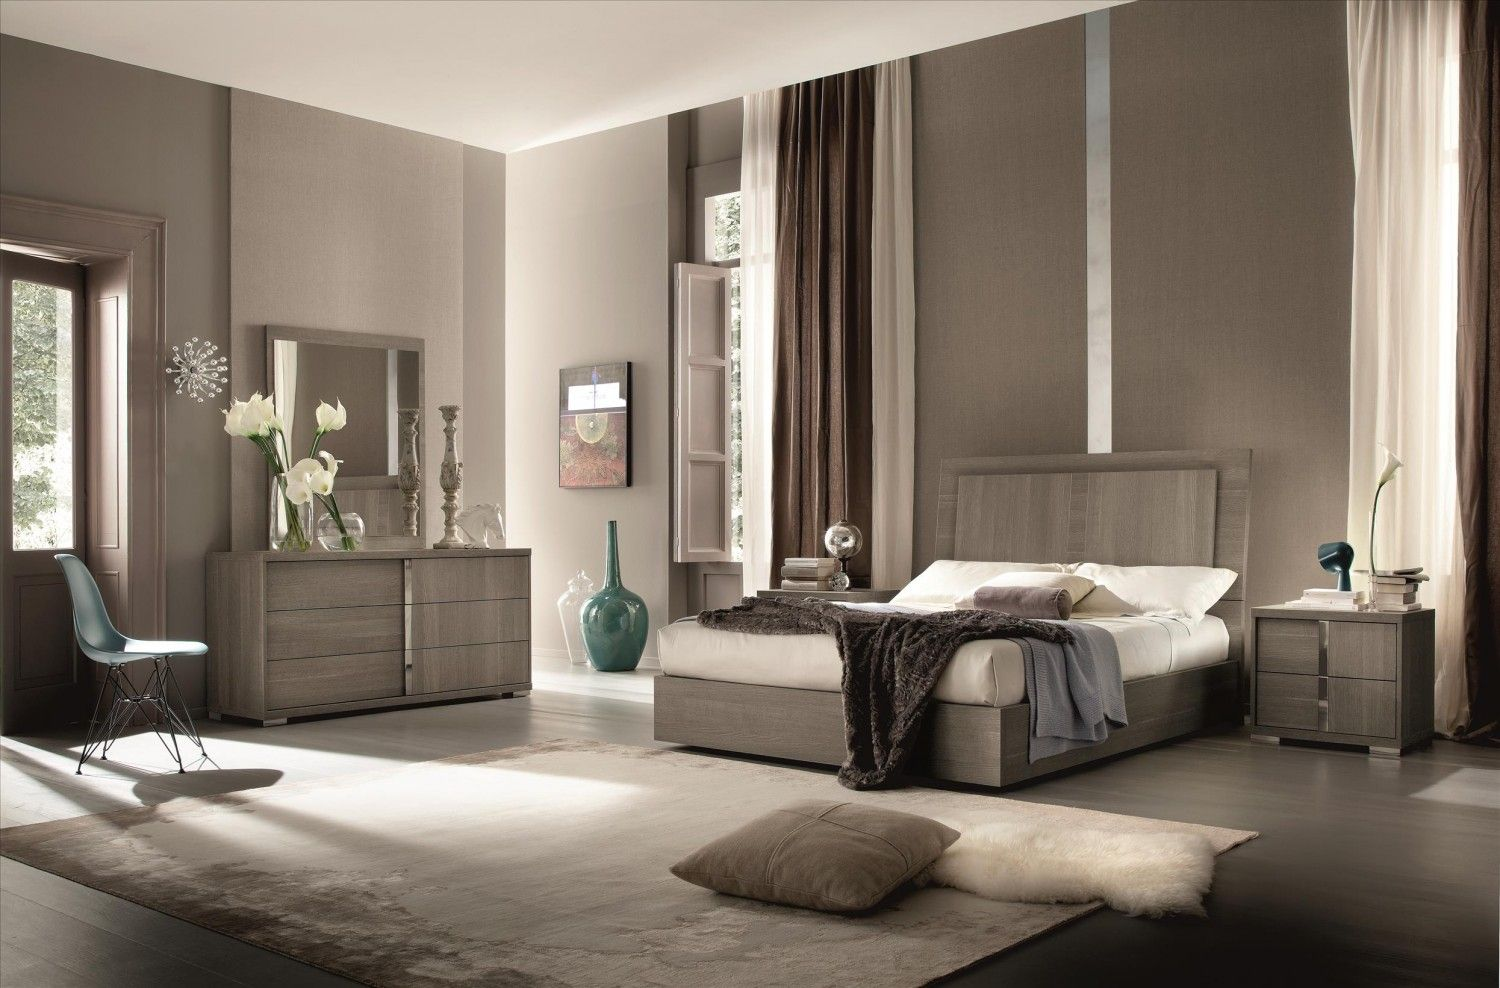 Tivoli Bedroom Set with Storage and Lighting System by ALF